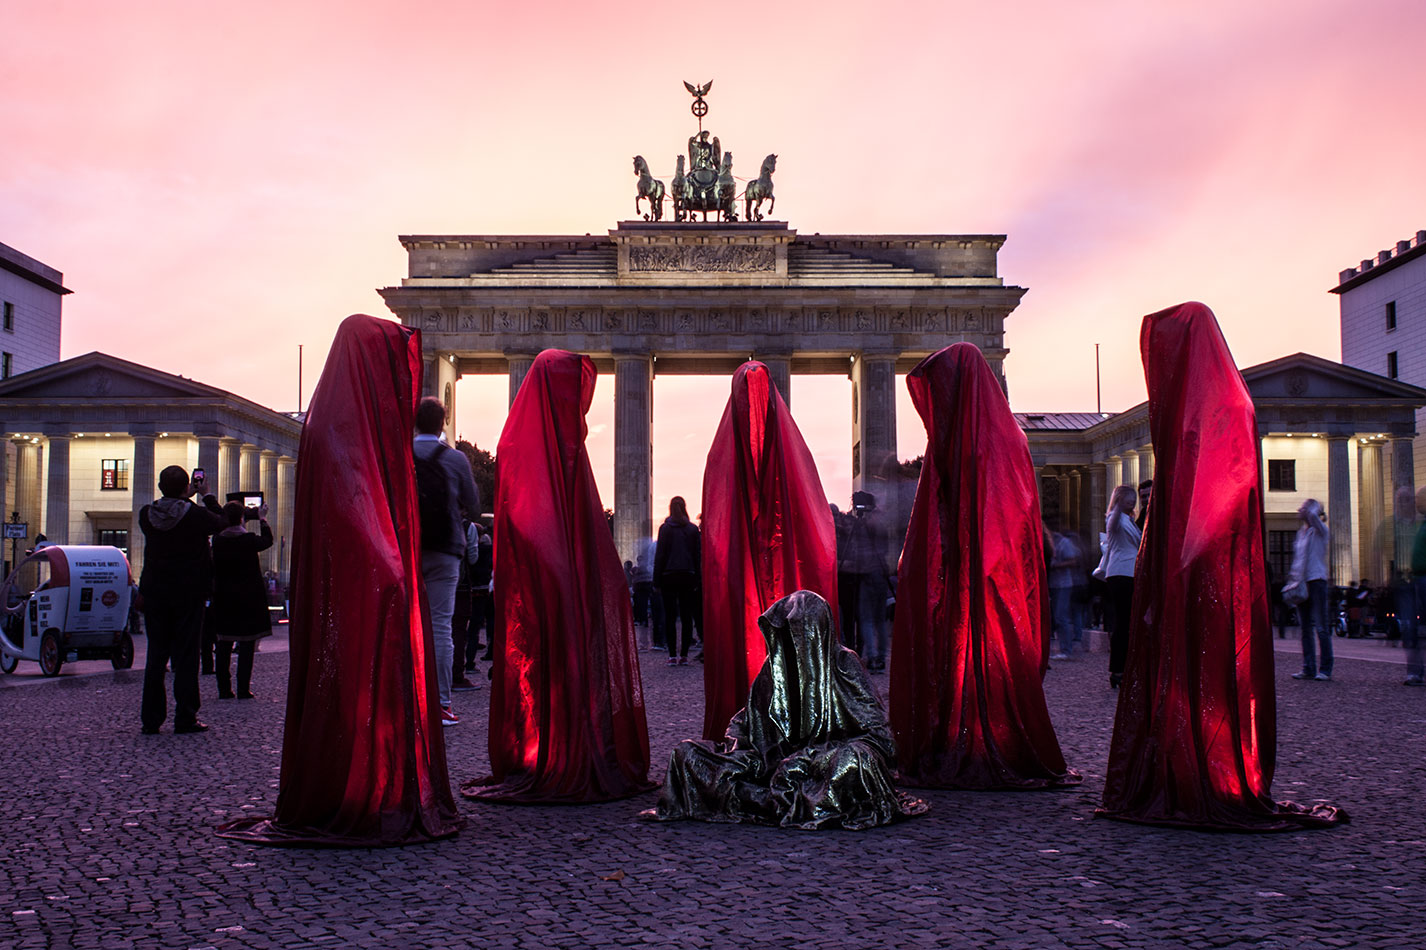 festival-of-lights-berlin-brandenburg-gate-light-art-show-exhibition-lumina-guardians-of-time-manfred-kili-kielnhofer-contemporary-arts-design-sculpture-3244